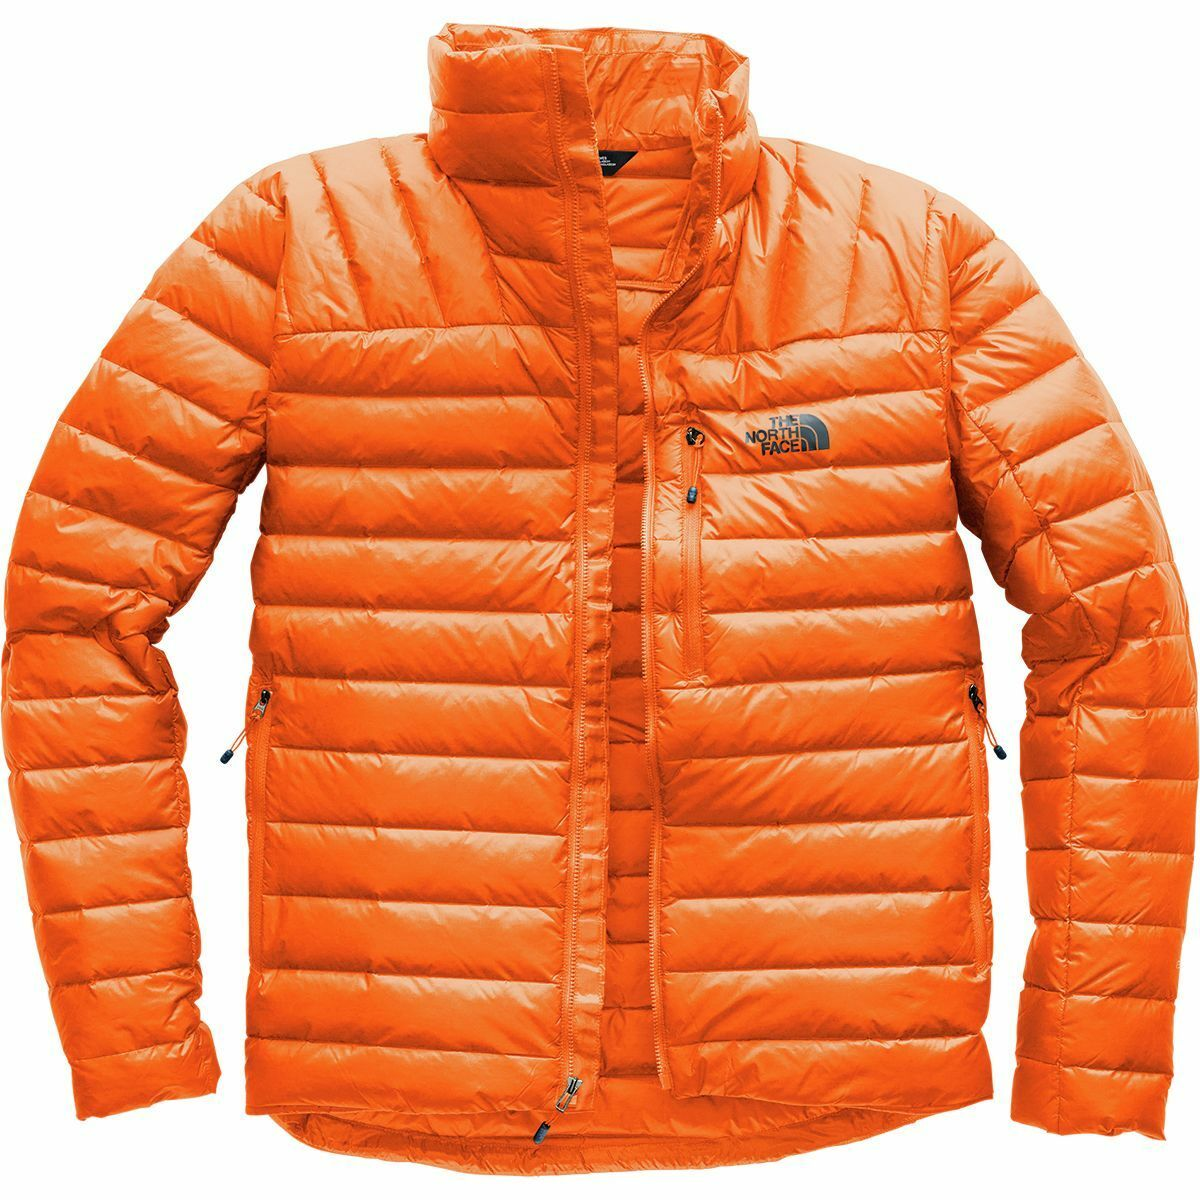 The North Face Mens MORPH 800 Down Lightweight Insulated Jacket Persian Orange M